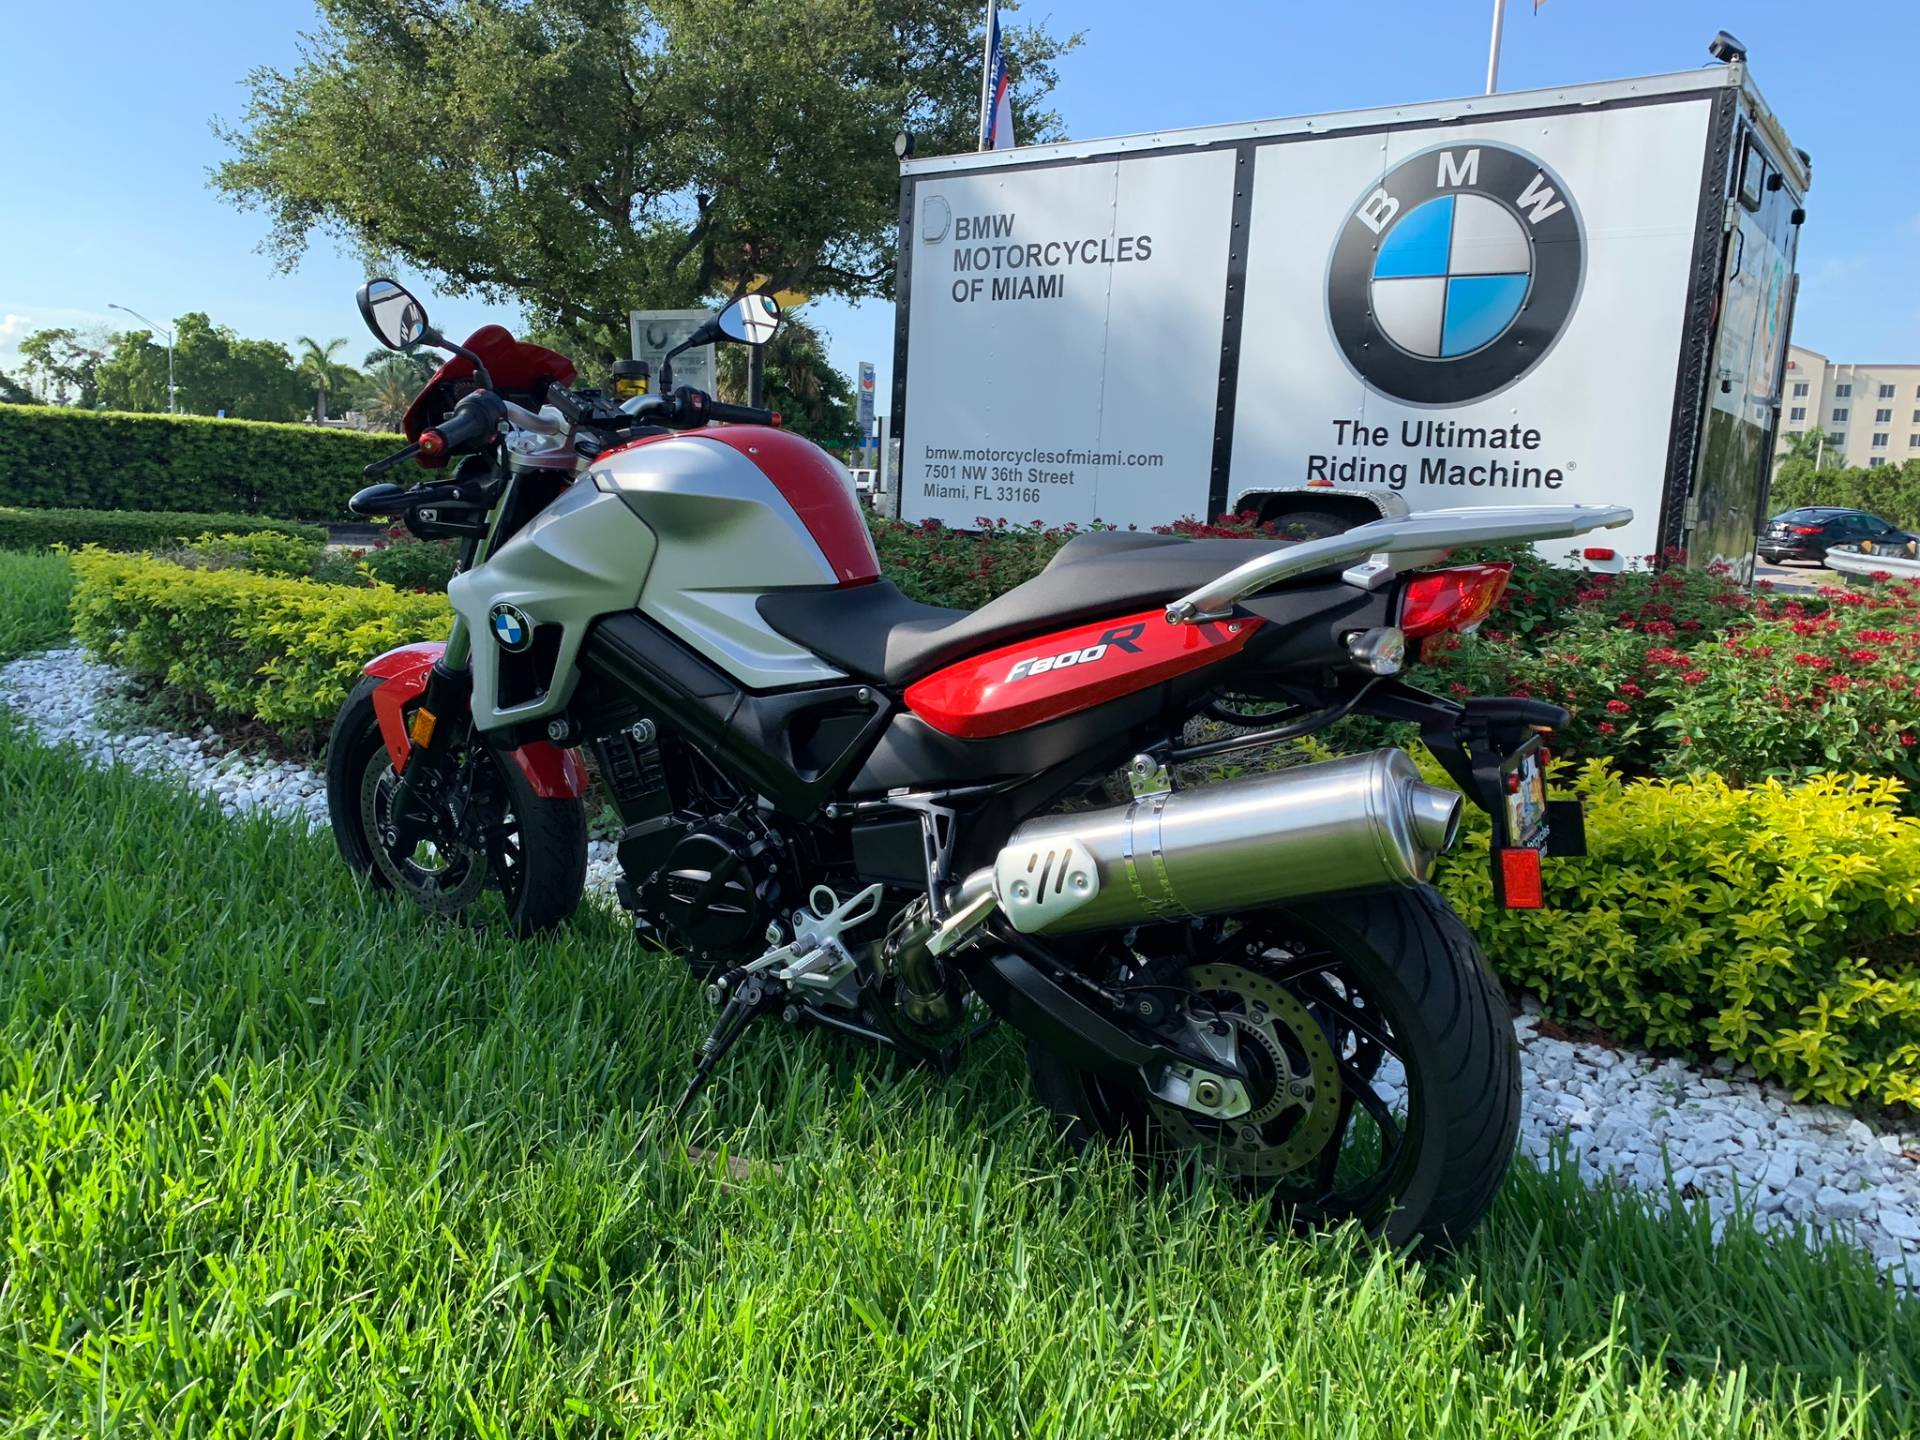 Used 2012 BMW F 800 R for sale, BMW F 800R for sale, BMW Motorcycle F800R, used BMW Roaster, Naked, 800, BMW. BMW Motorcycles of Miami, Motorcycles of Miami, Motorcycles Miami, New Motorcycles, Used Motorcycles, pre-owned. #BMWMotorcyclesOfMiami #MotorcyclesOfMiami. - Photo 9